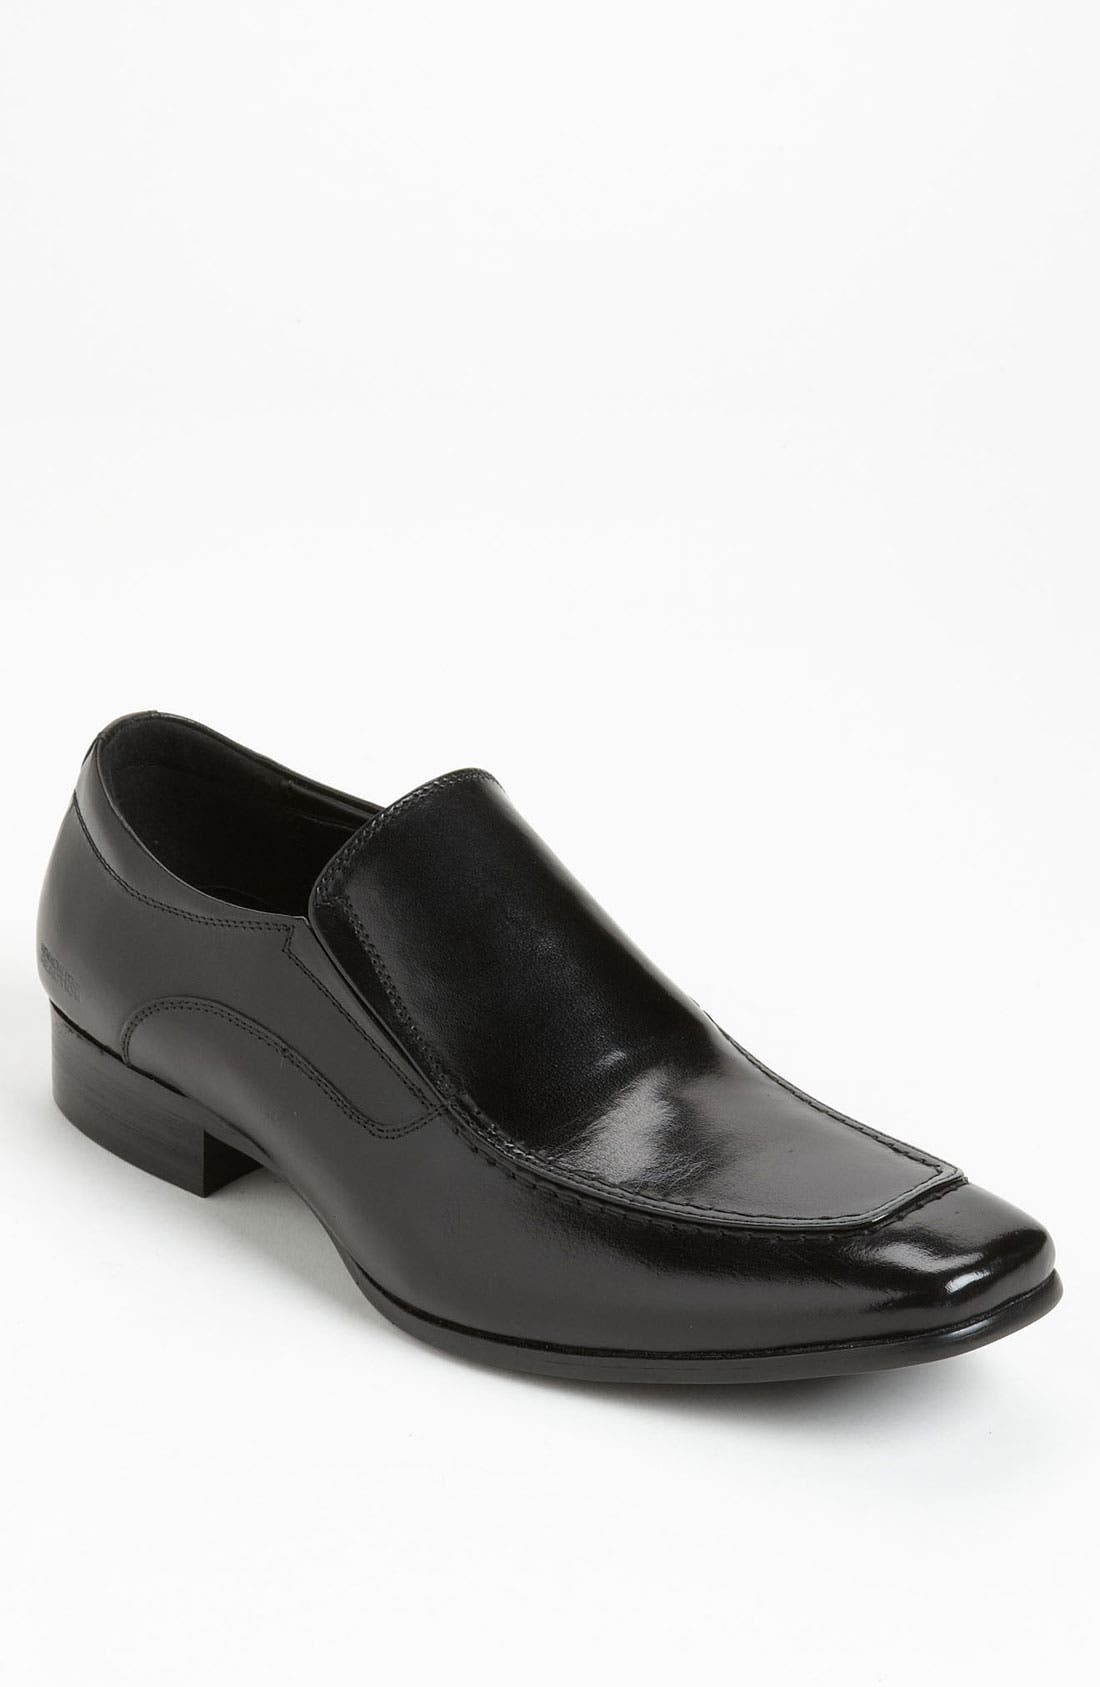 Alternate Image 1 Selected - Kenneth Cole Reaction 'Start Stitch' Loafer (Online Only)